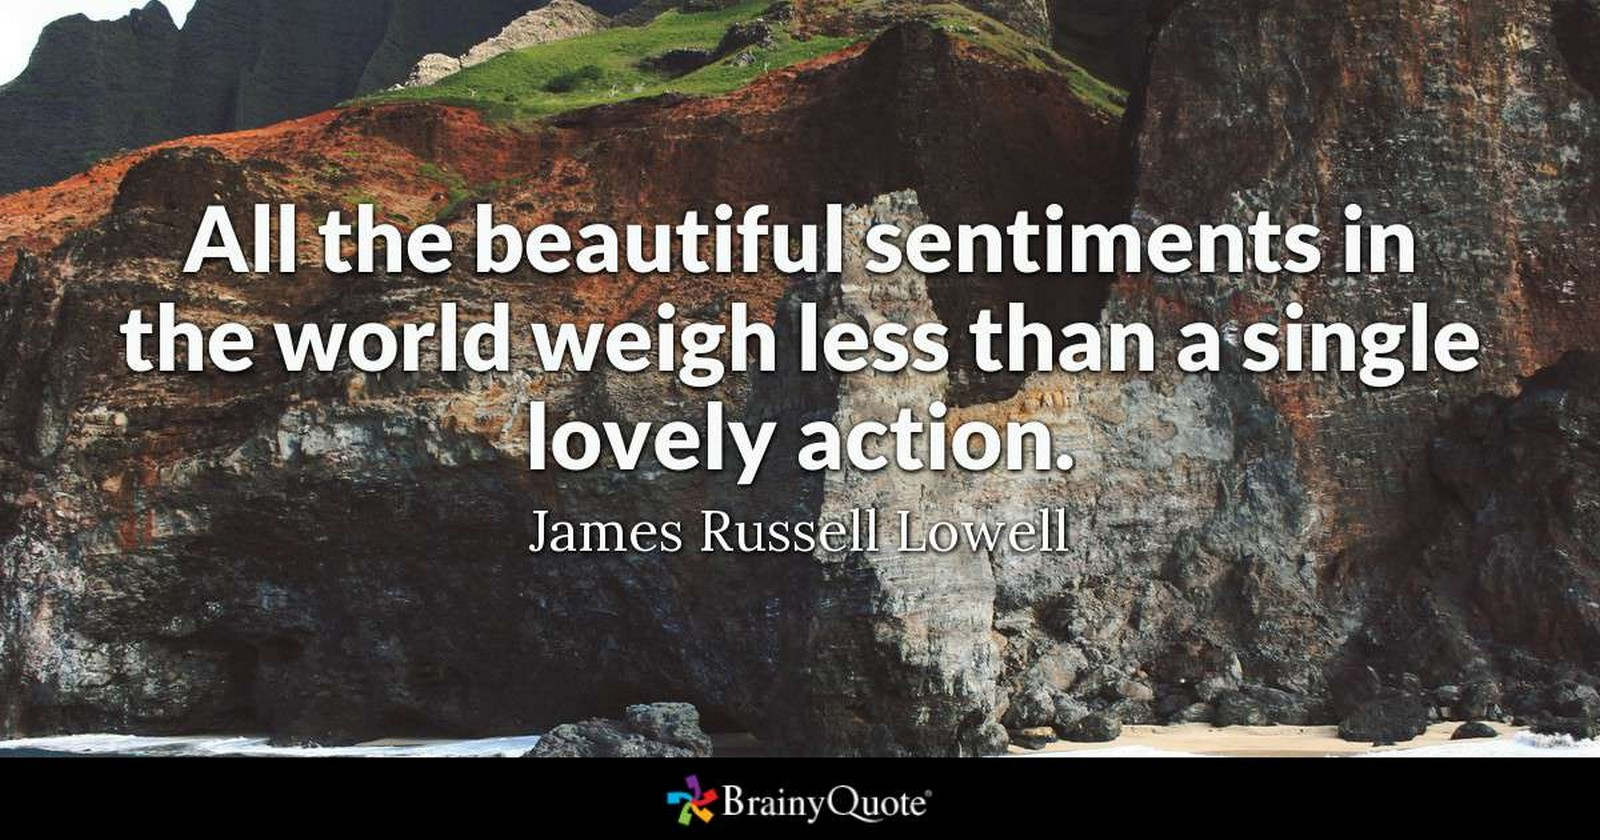 "55 Romantic Quotes - ""All the beautiful sentiments in the world weigh less than a single lovely action."" - James Russel Lowell"